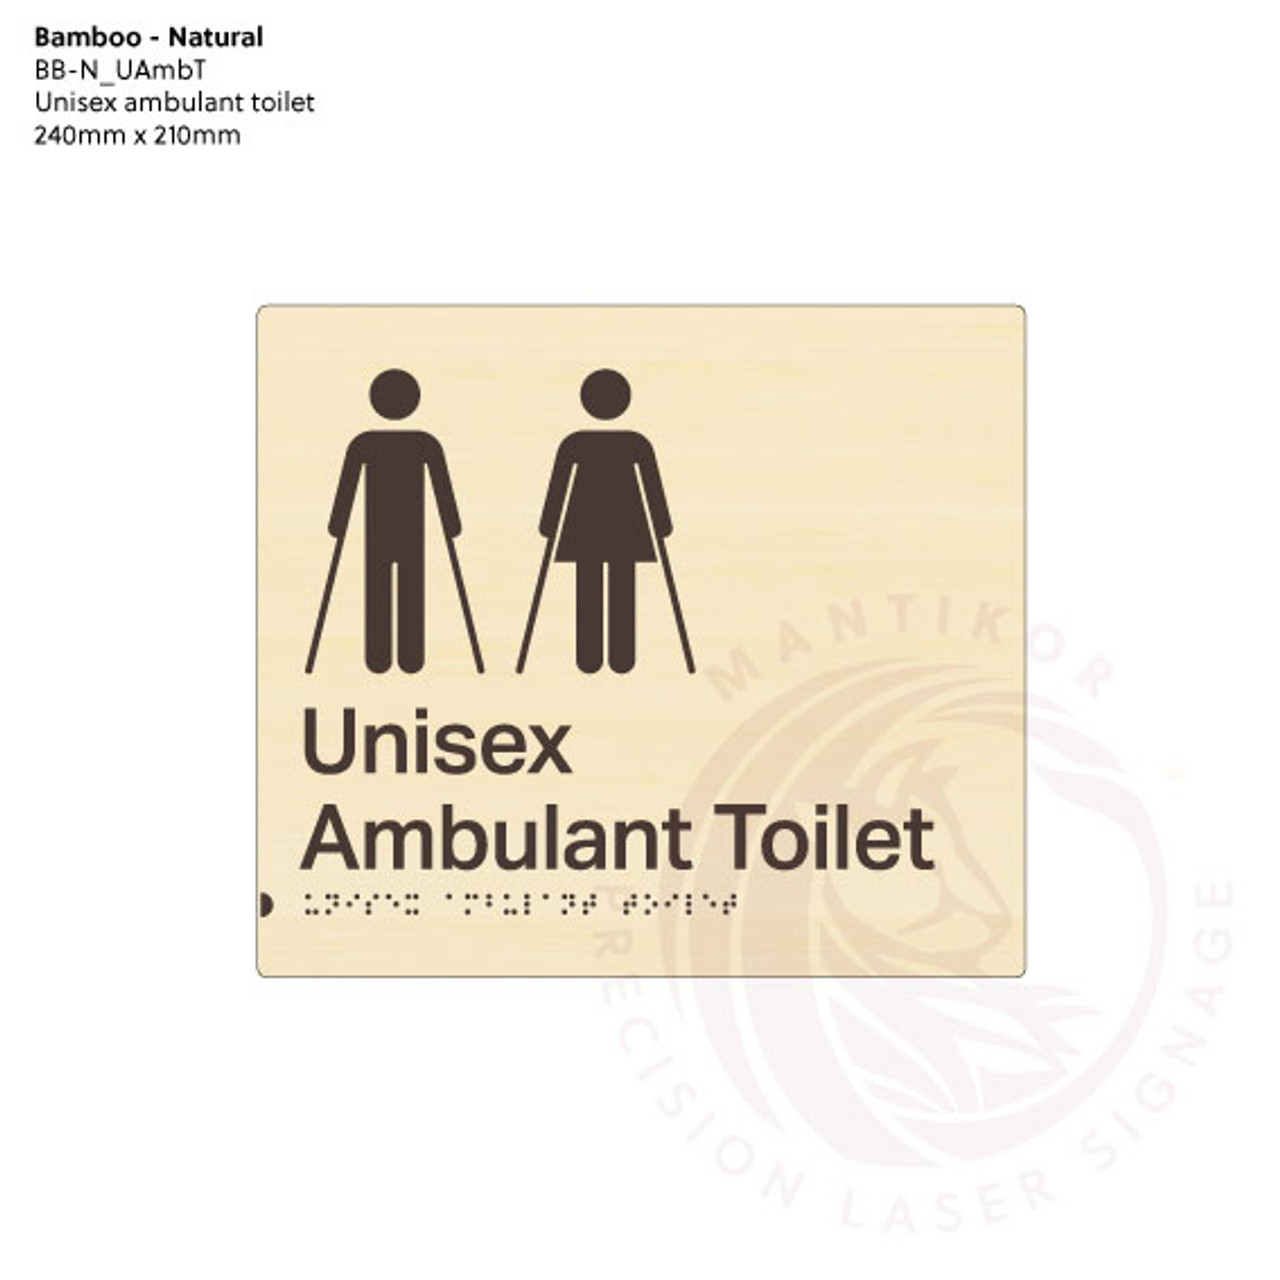 Natural Bamboo Tactile Braille Signs - Unisex Ambulant Toilet